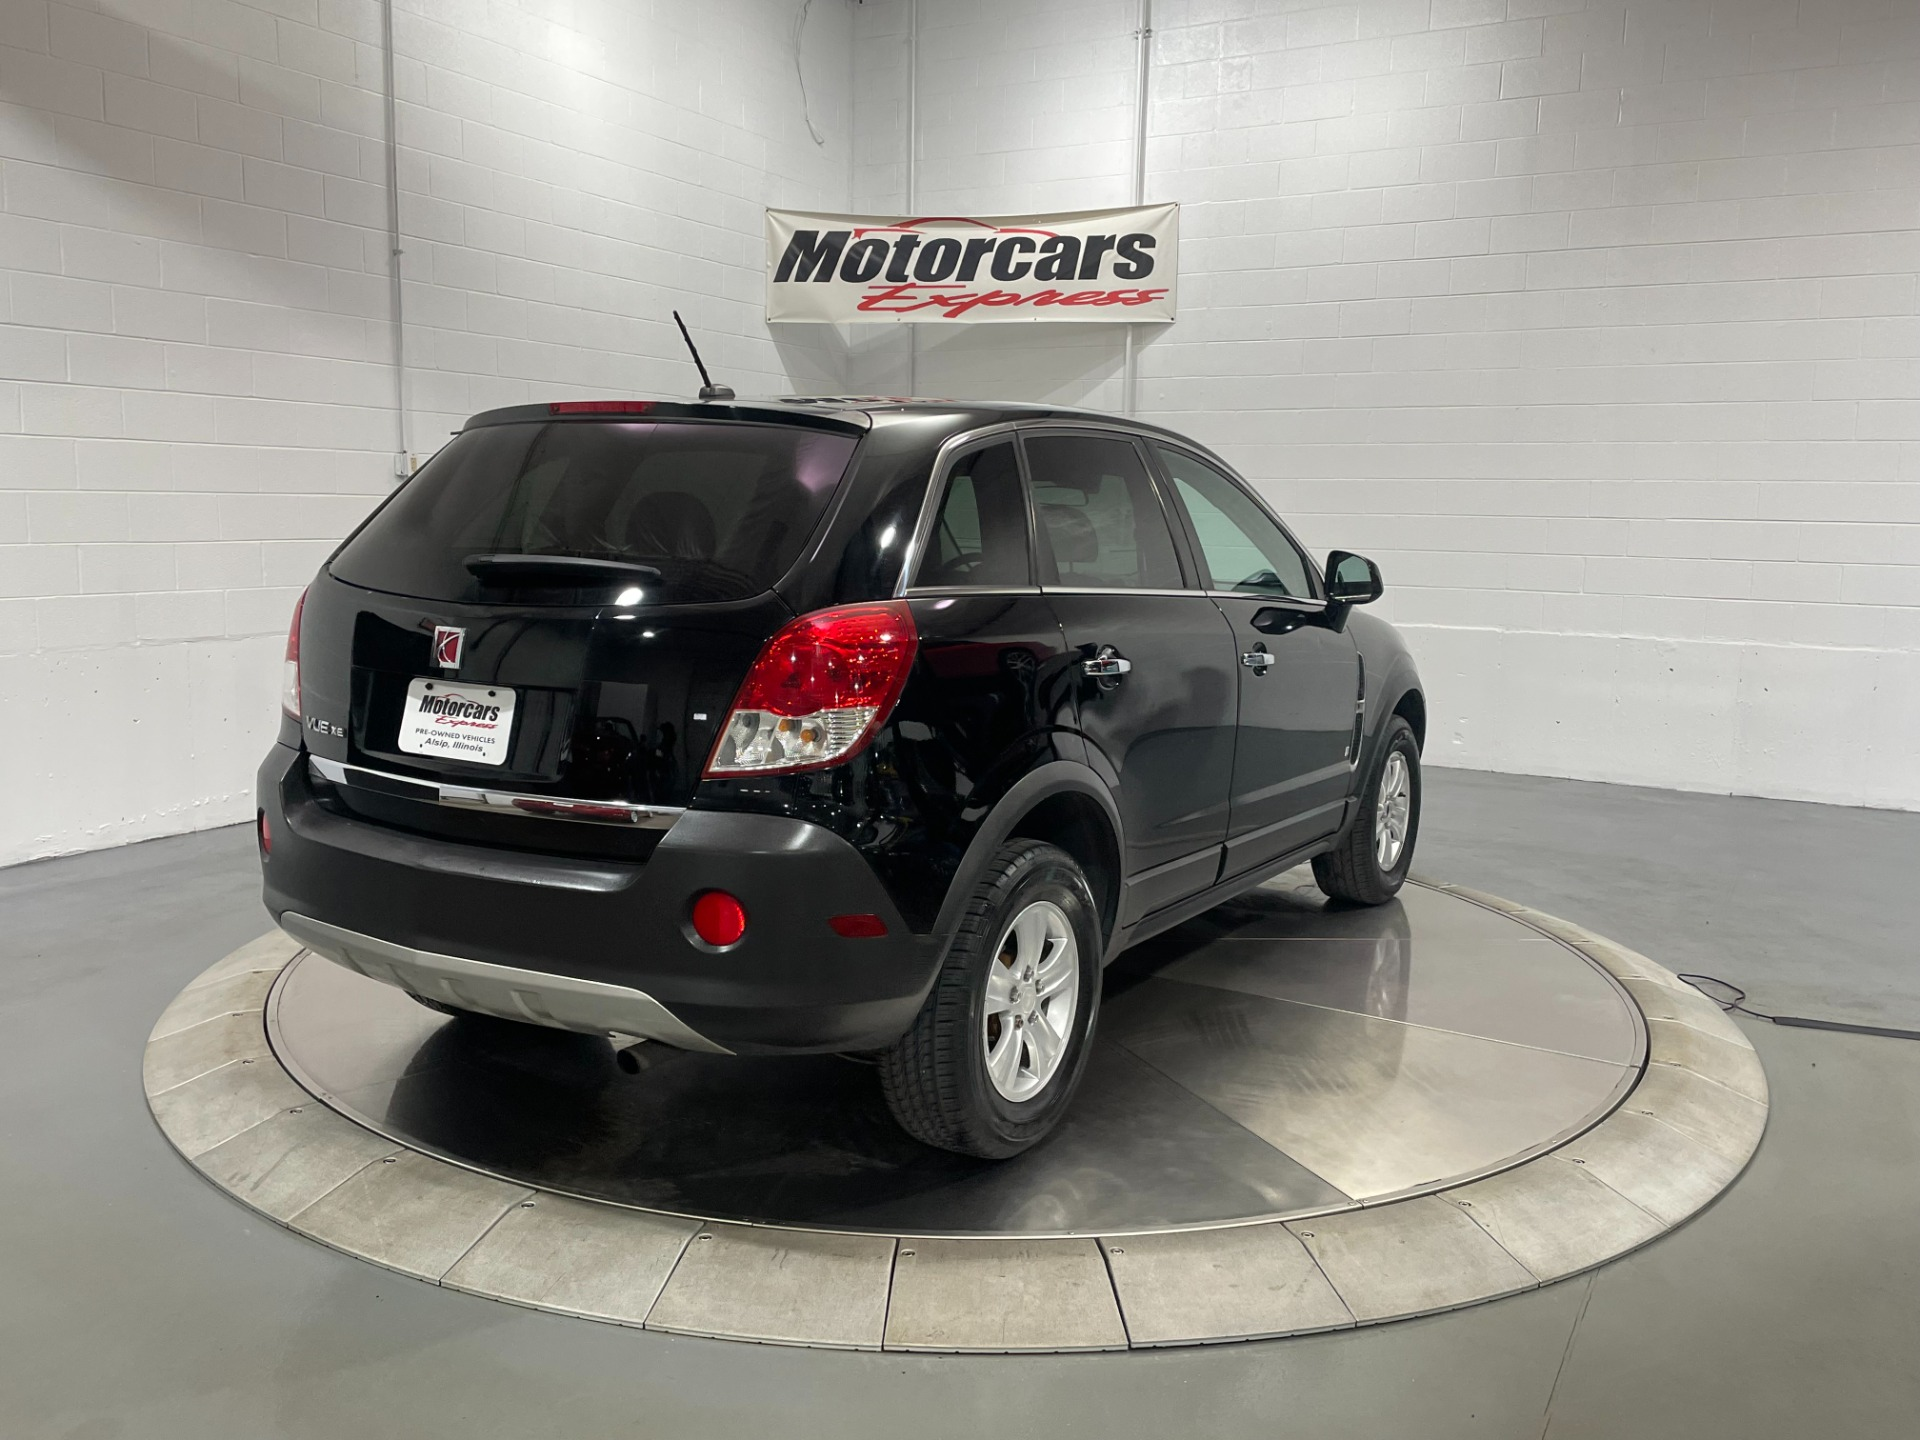 Used-2008-Saturn-Vue-XE-FWD